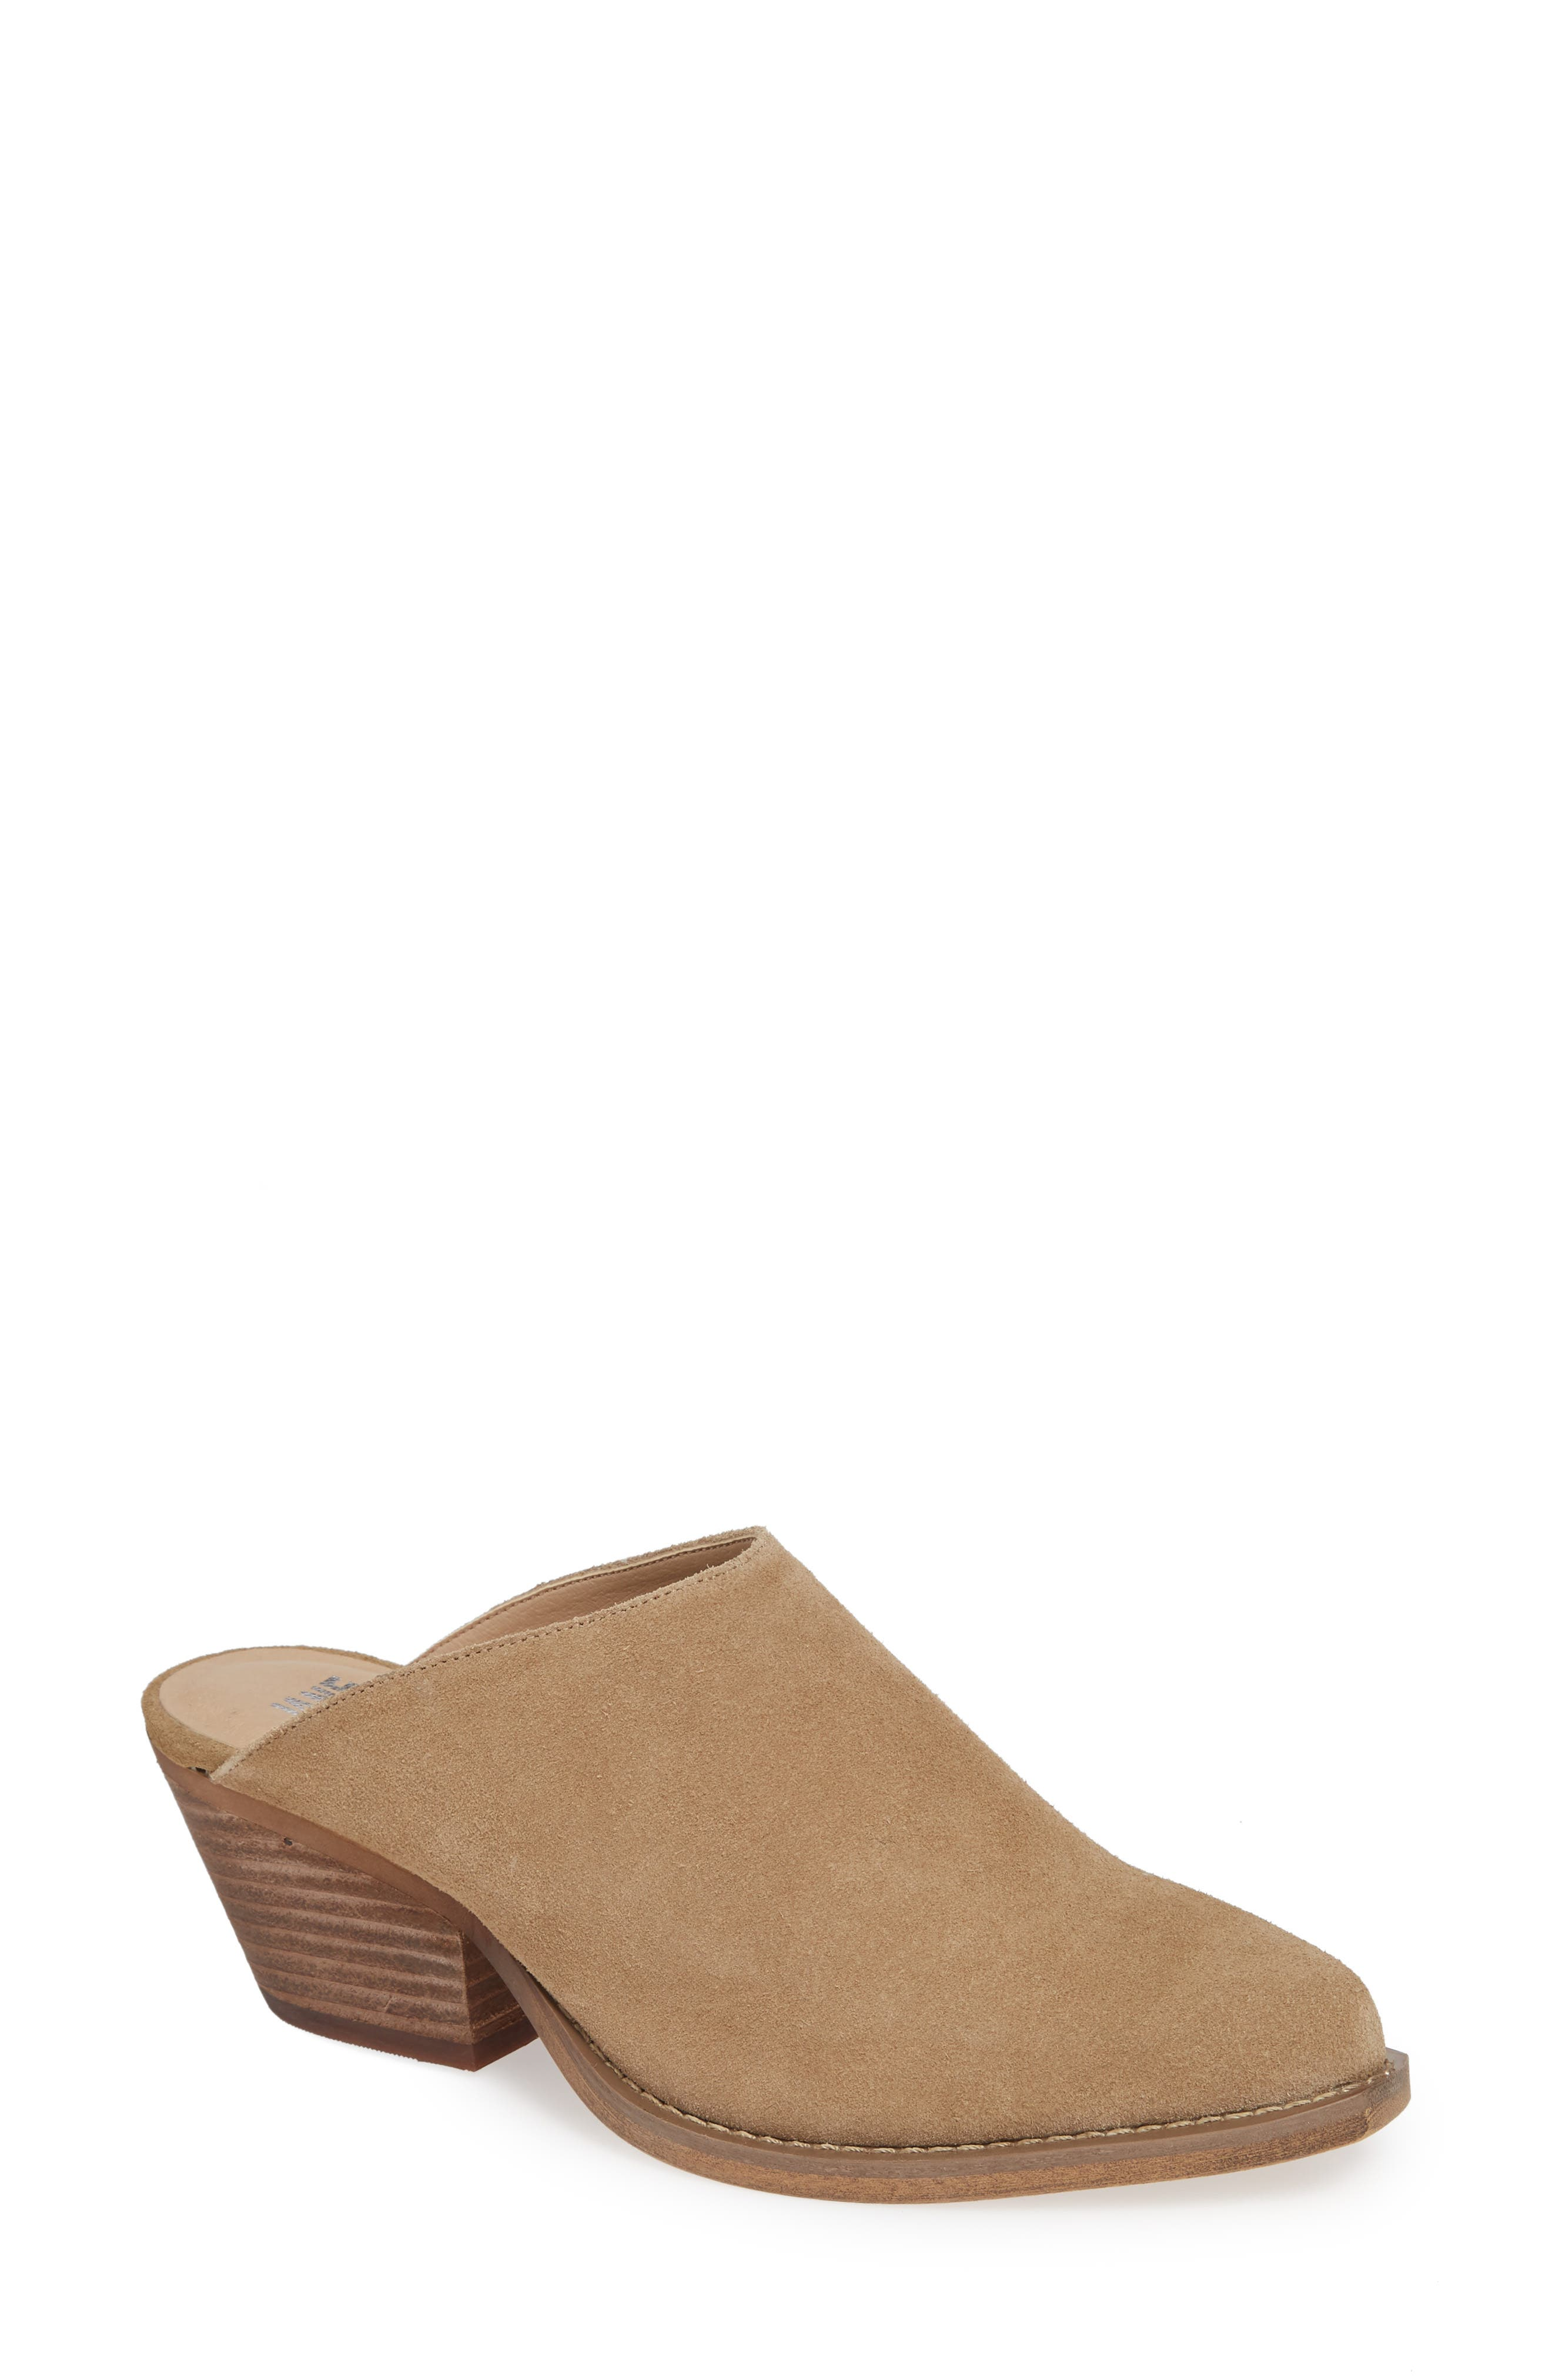 Karissa Mule,                         Main,                         color, SAND